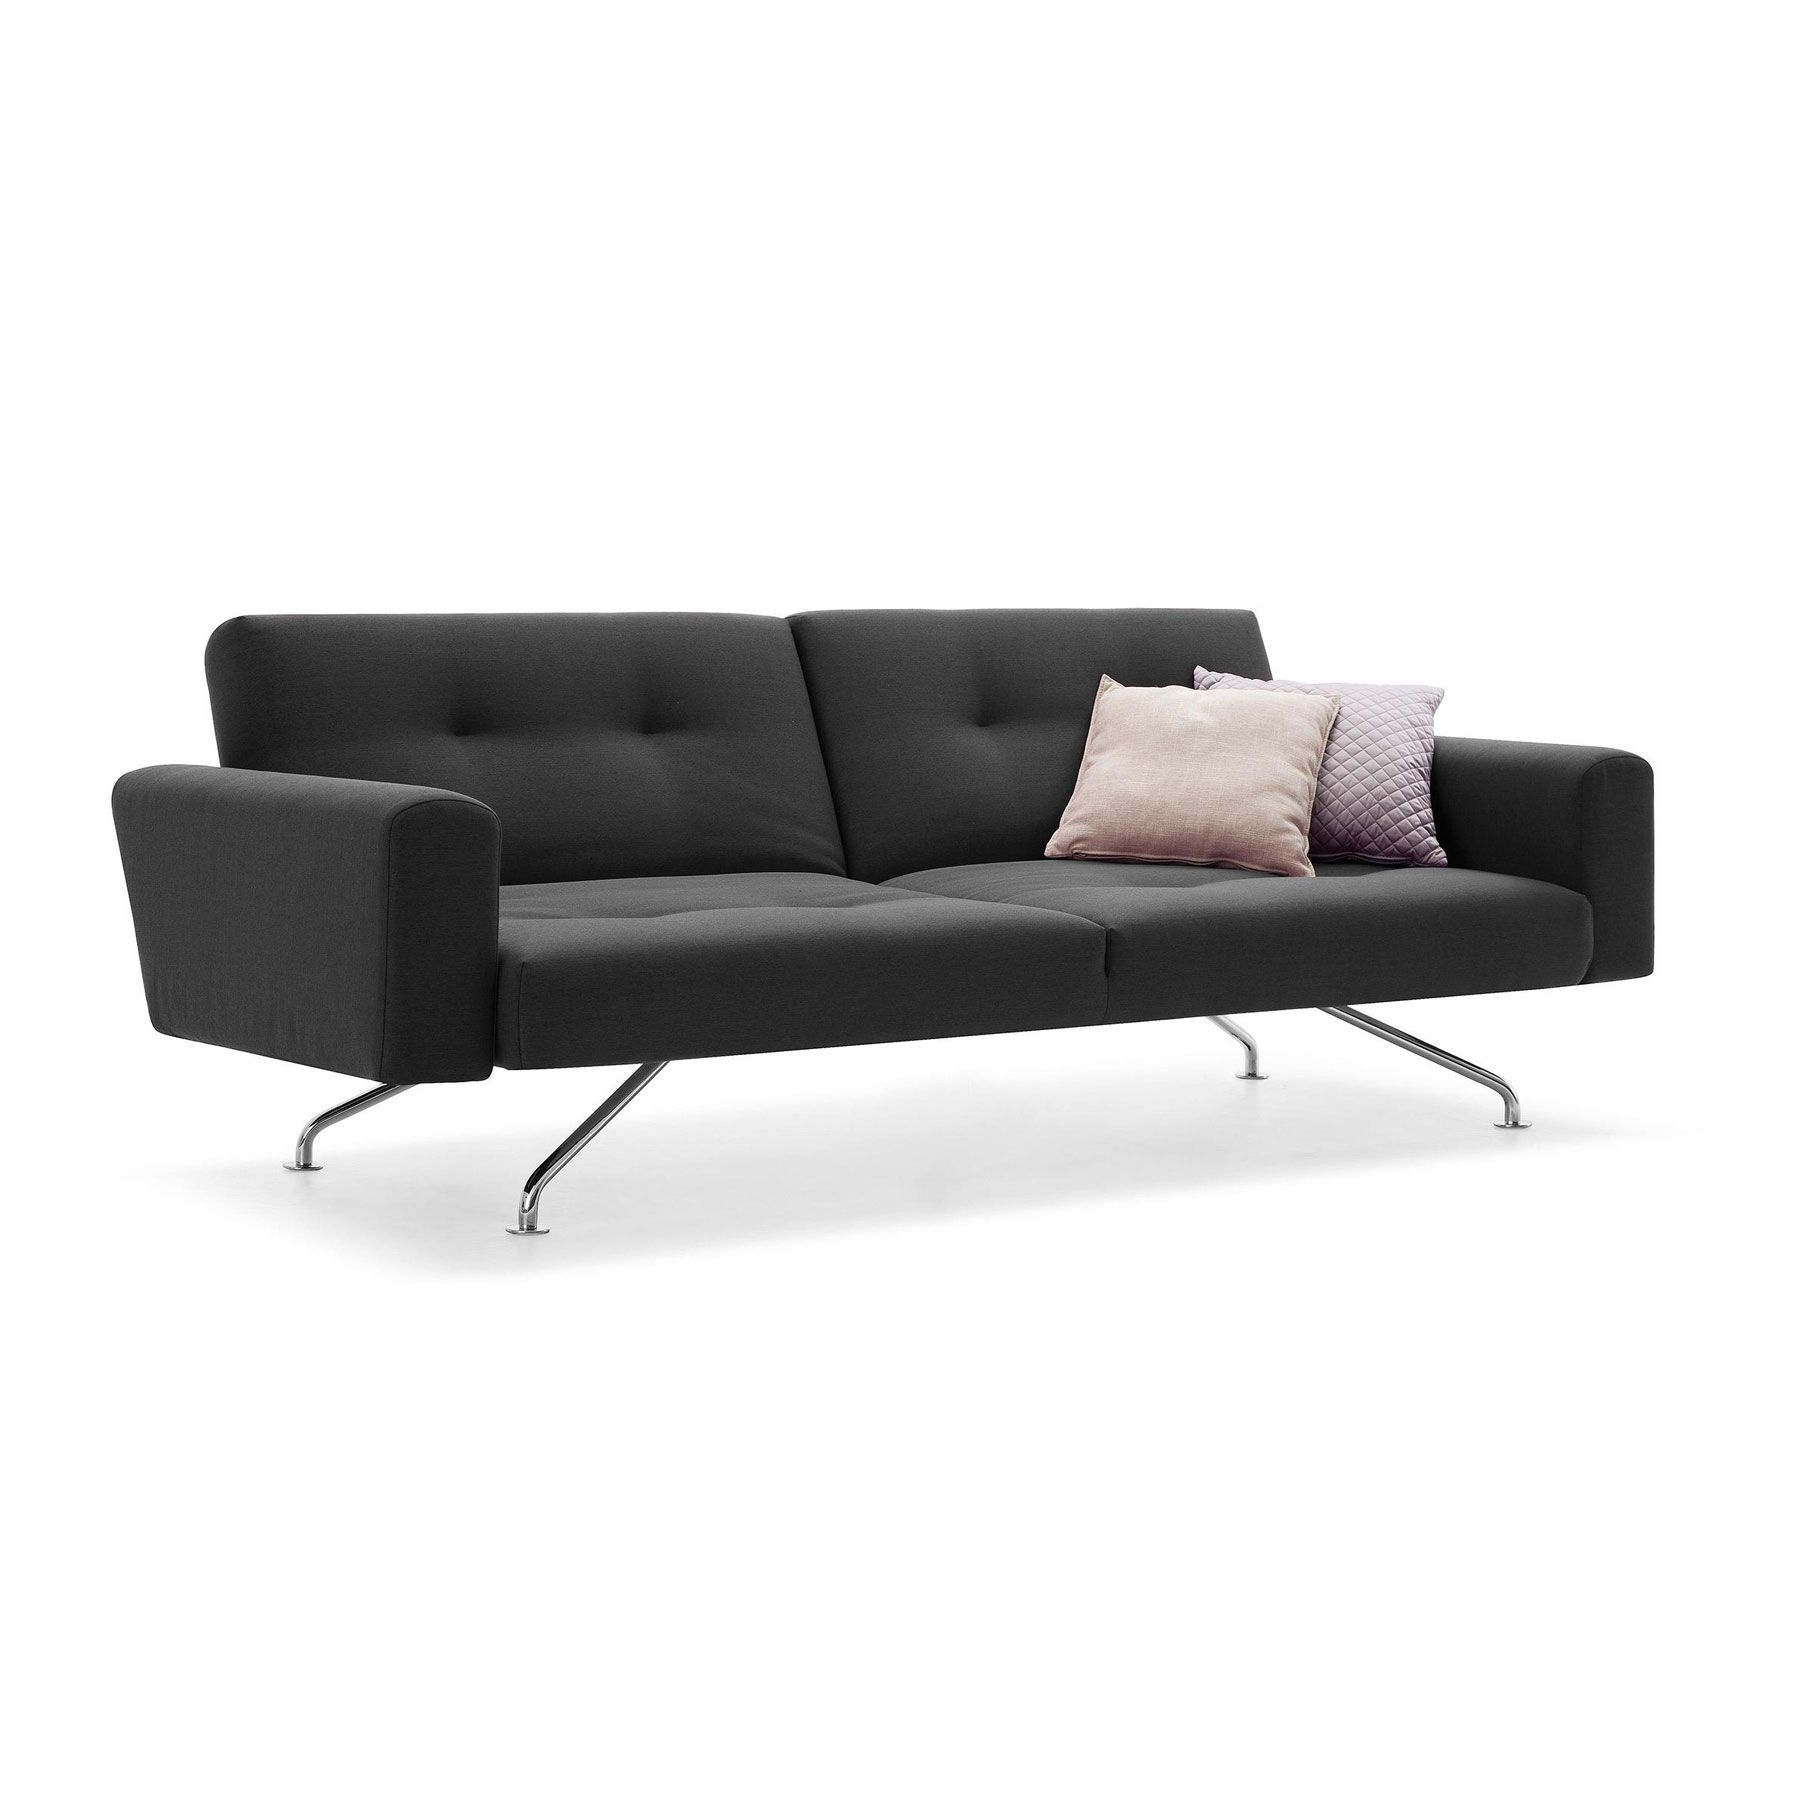 Aidan Convertible Sofa | Dotandbo (View 8 of 25)